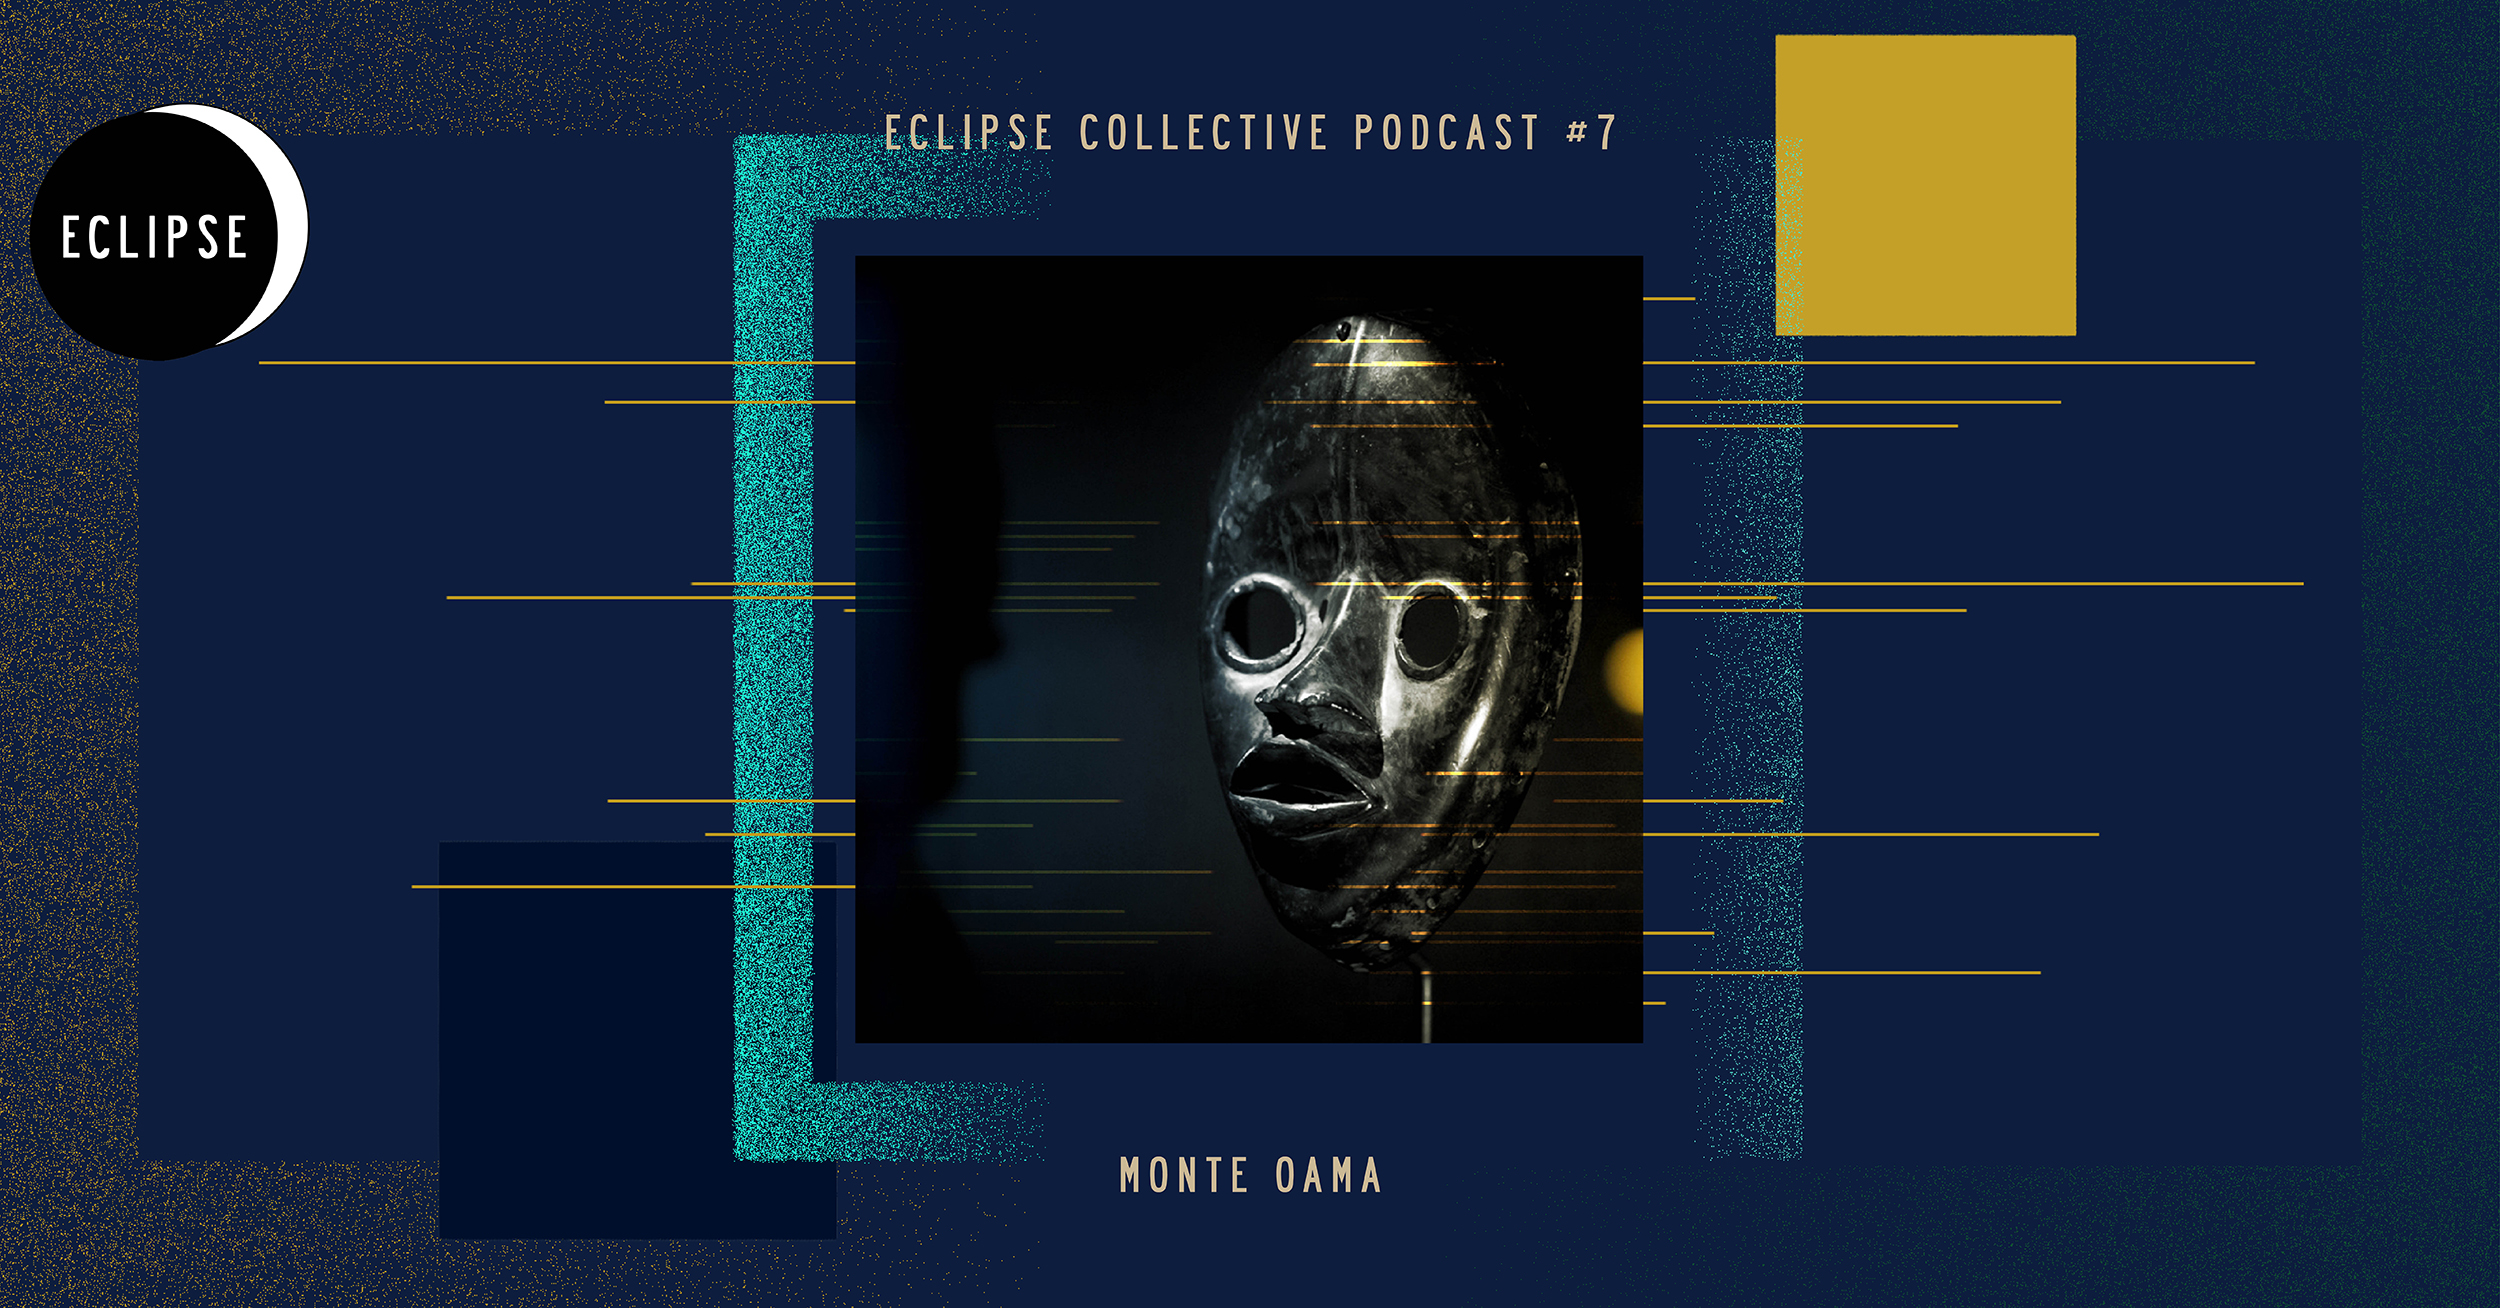 Eclipse Collective Podcast #7 - Monte oama